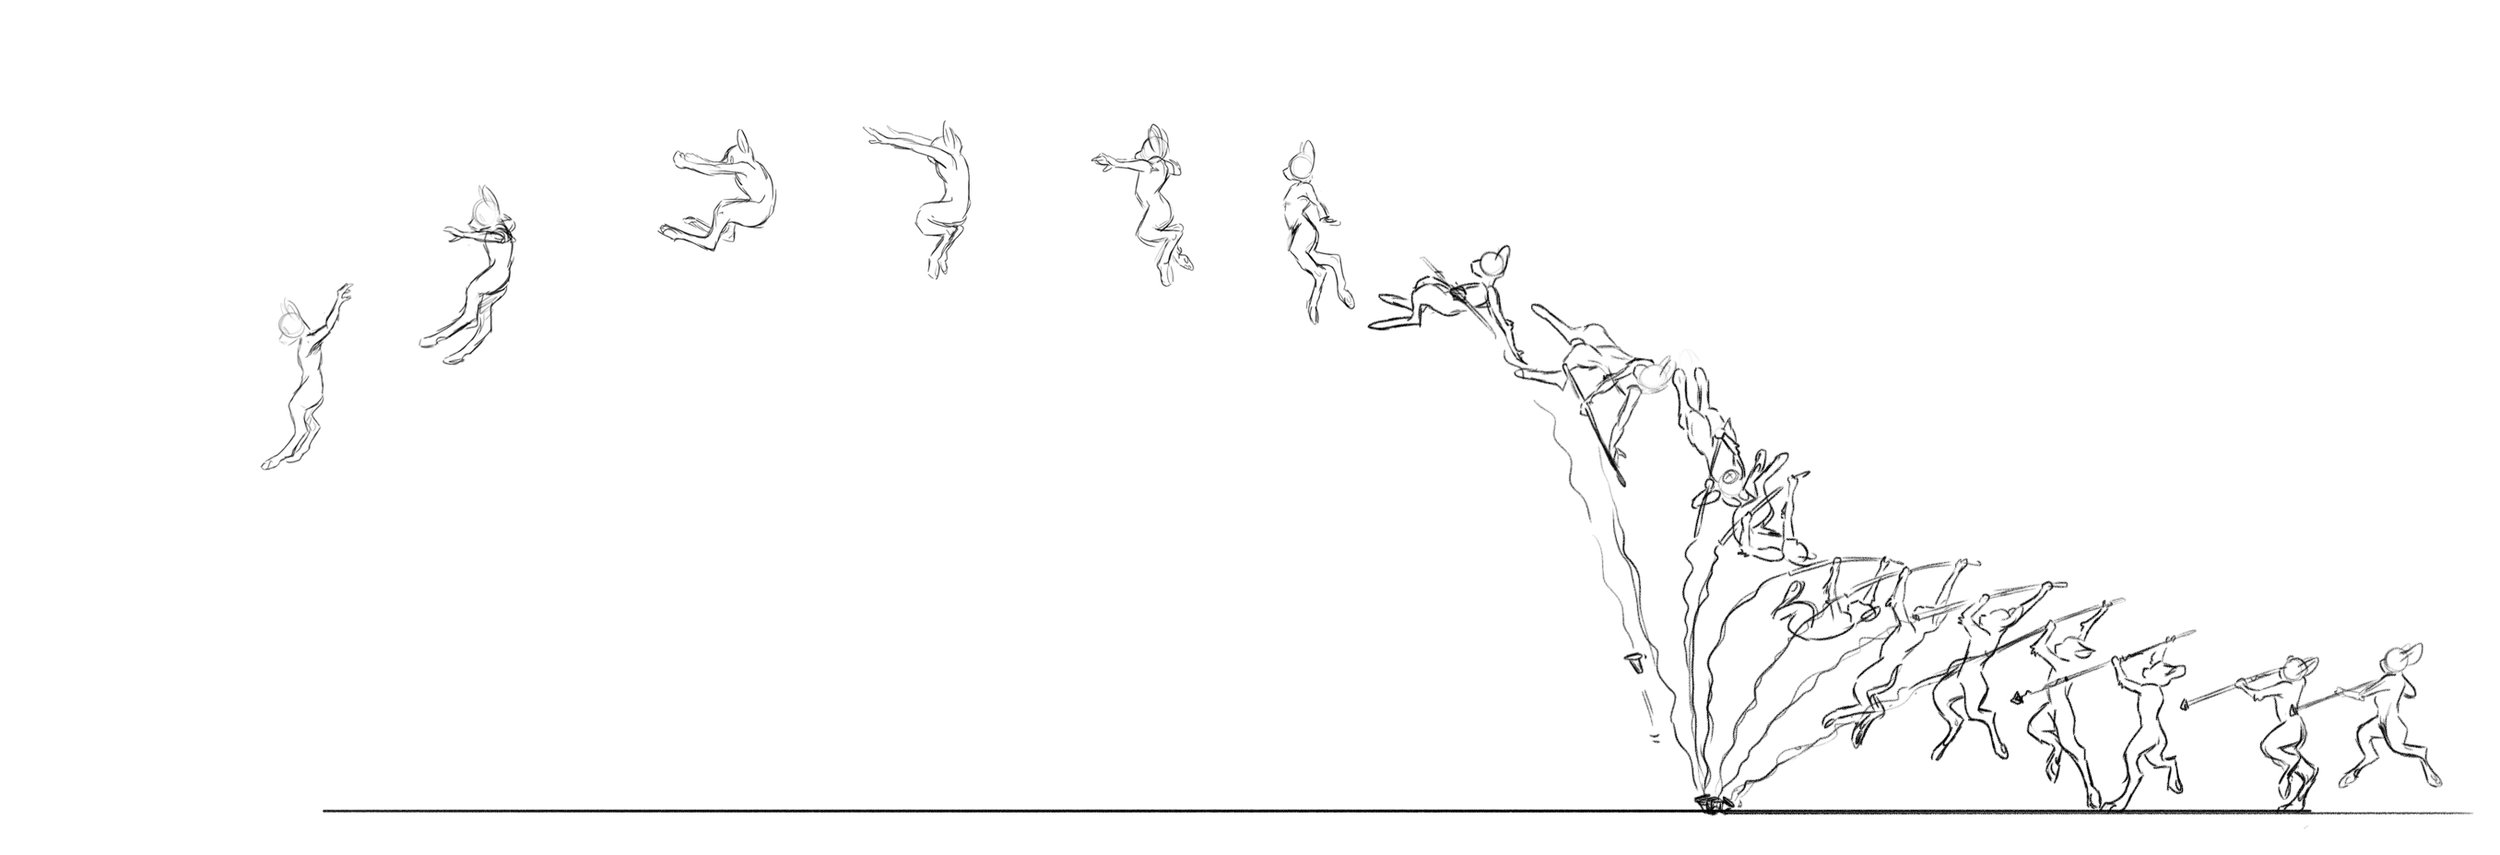 Concept   Running and pole vaulting keyframes